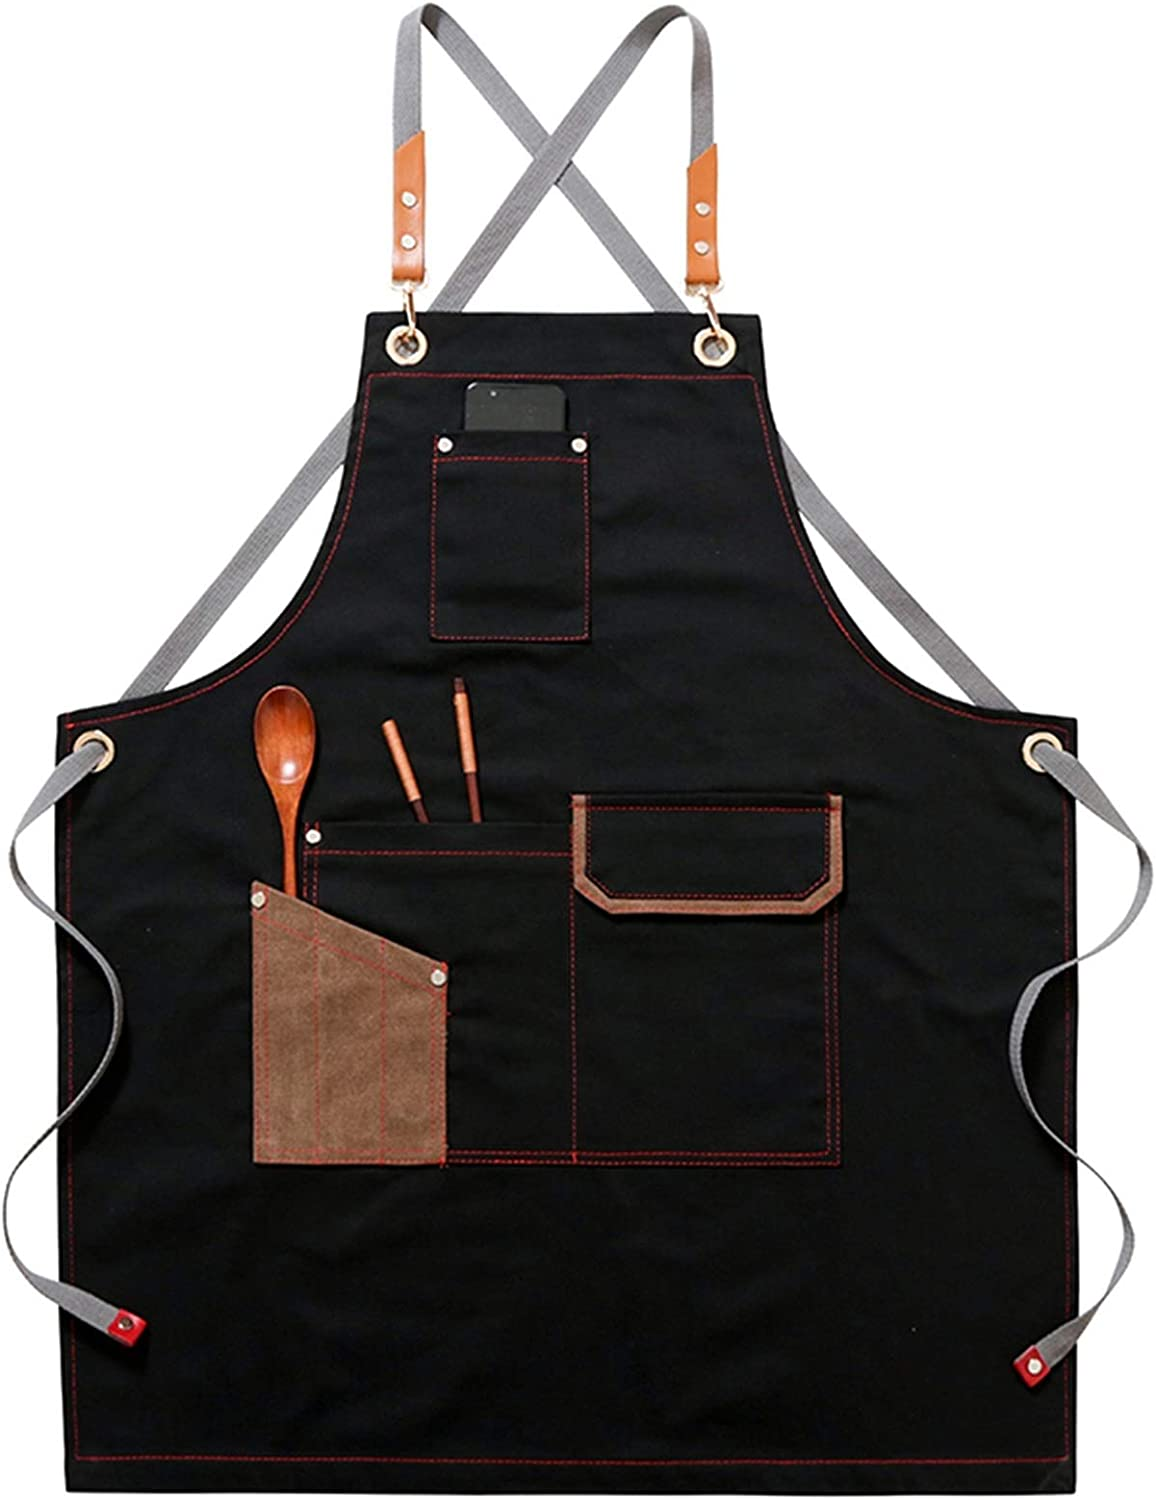 VVBBS CNlxxng Chef Aprons Ranking TOP7 for Men Apron Max 58% OFF Baking with Adjus Pocket